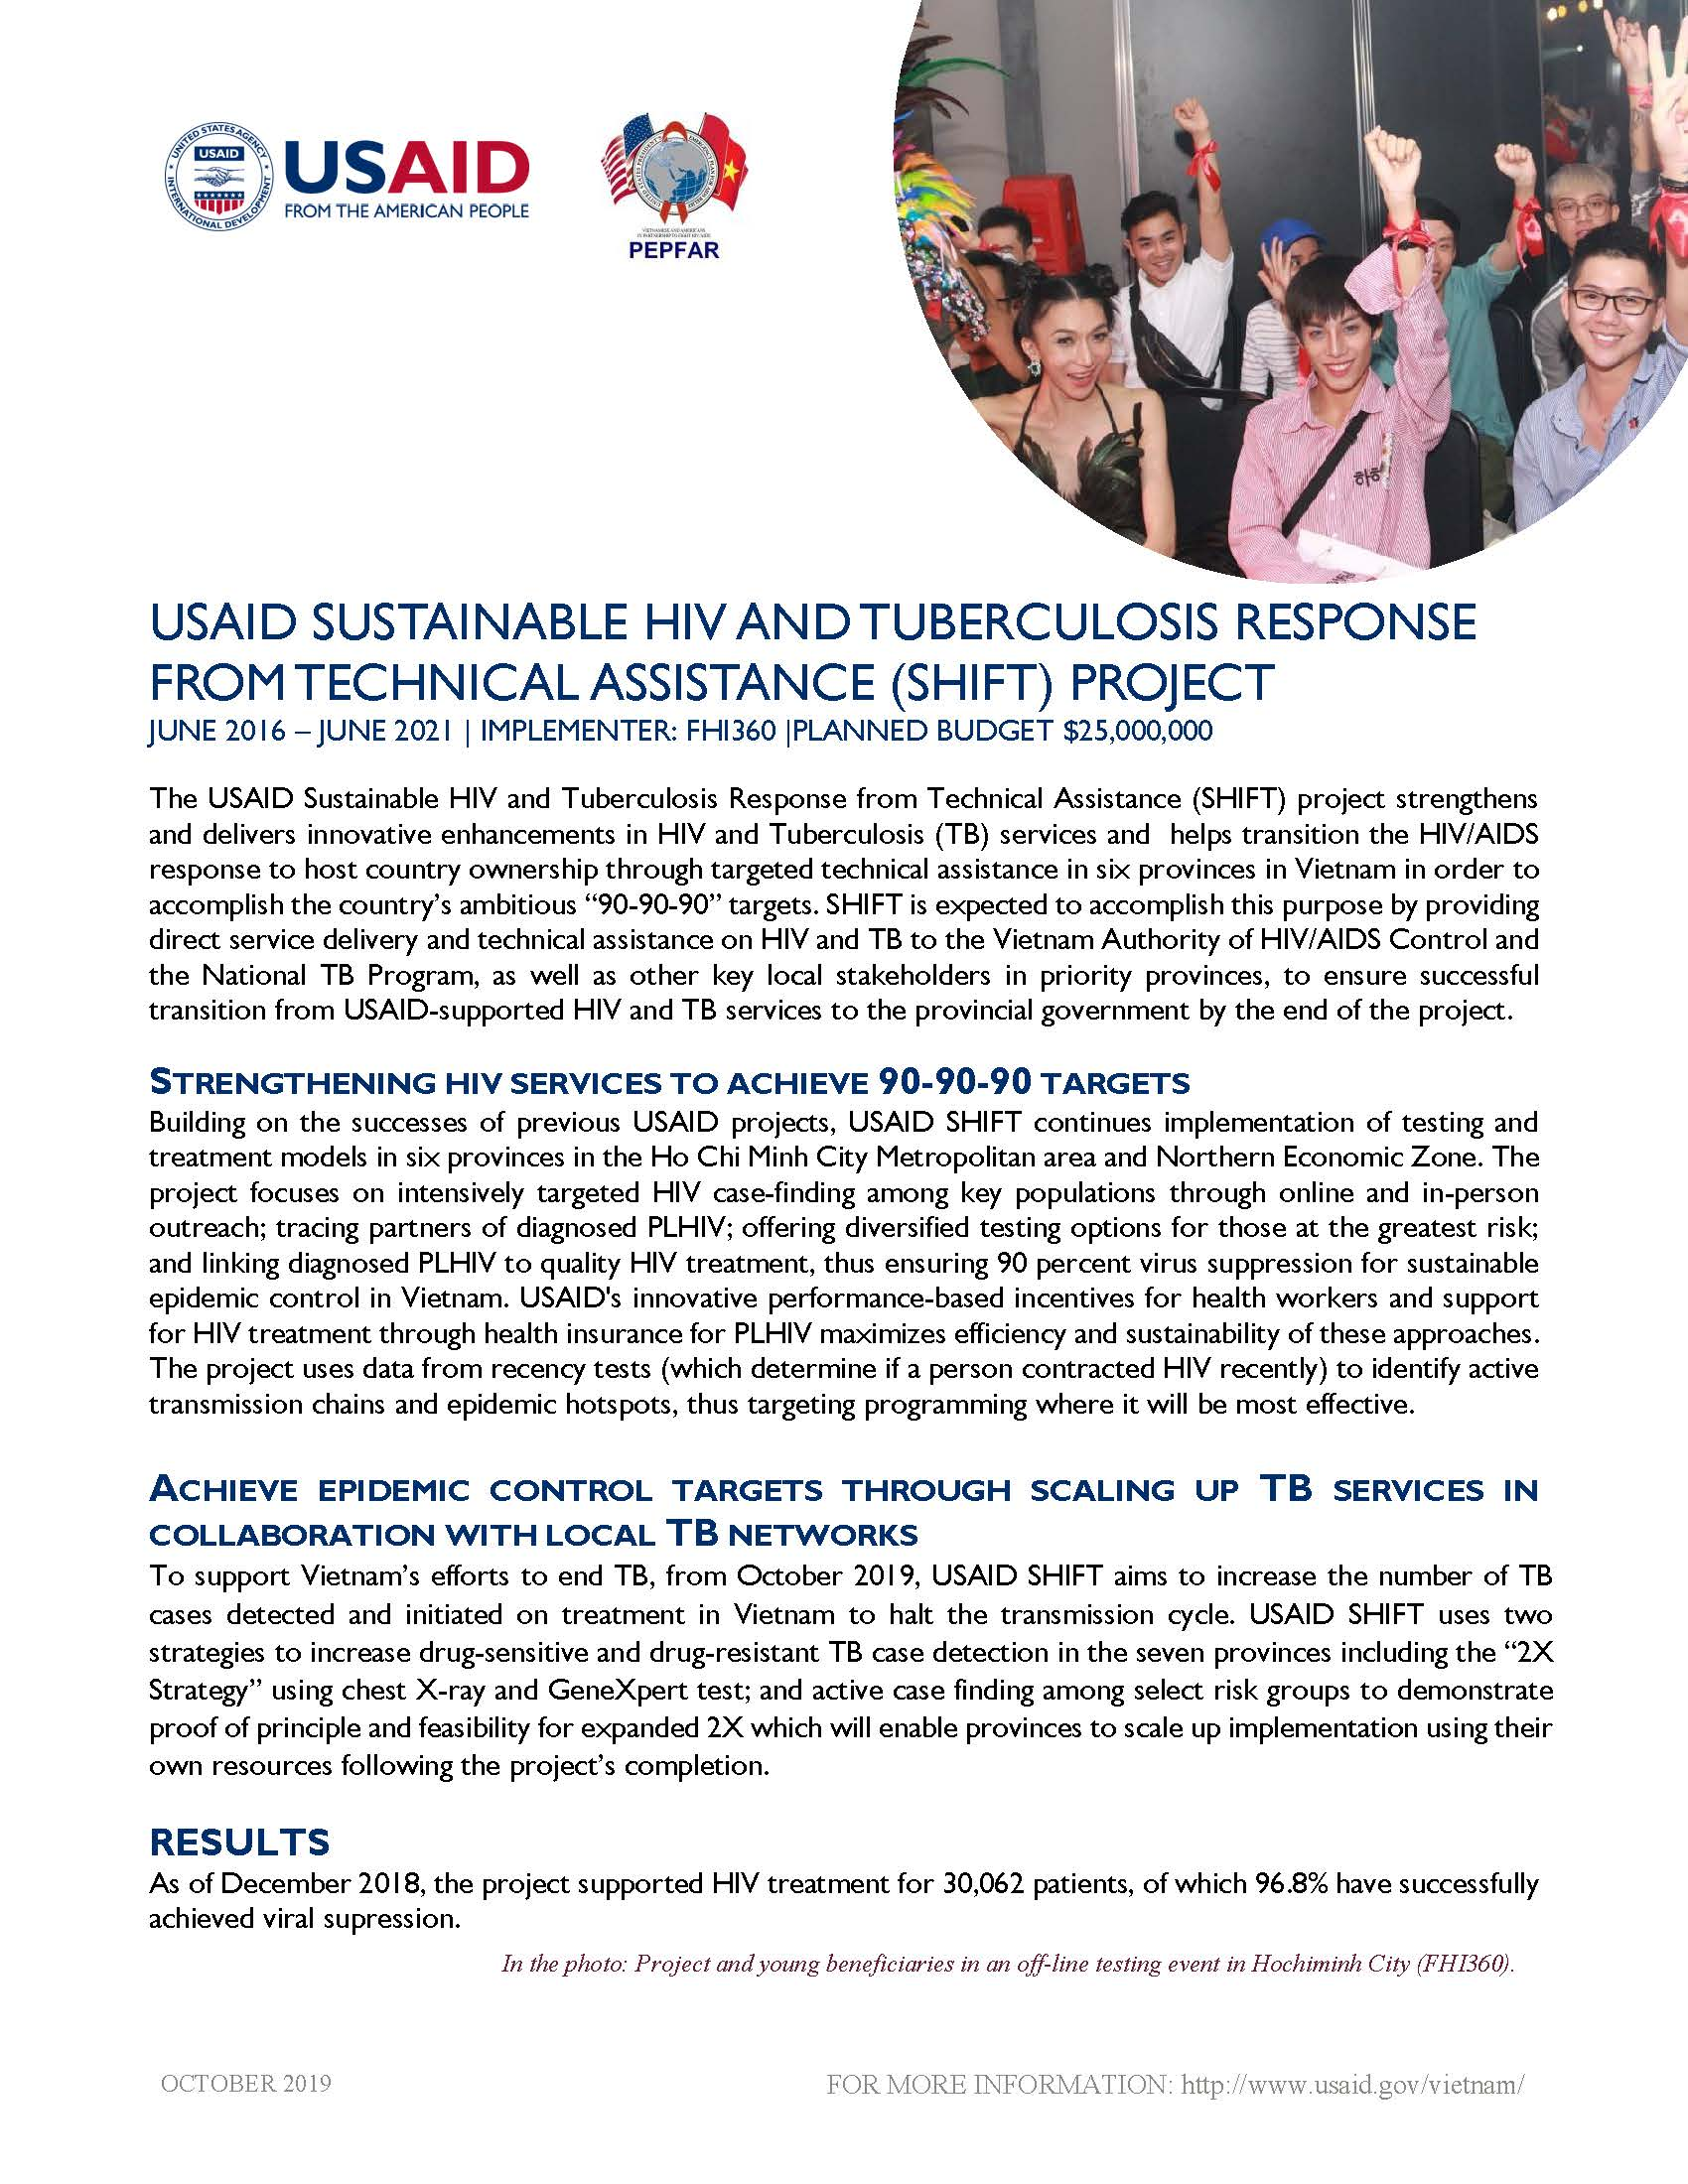 USAID Sustainable HIV and Tuberculosis Response from Technical Assistance (SHIFT) project